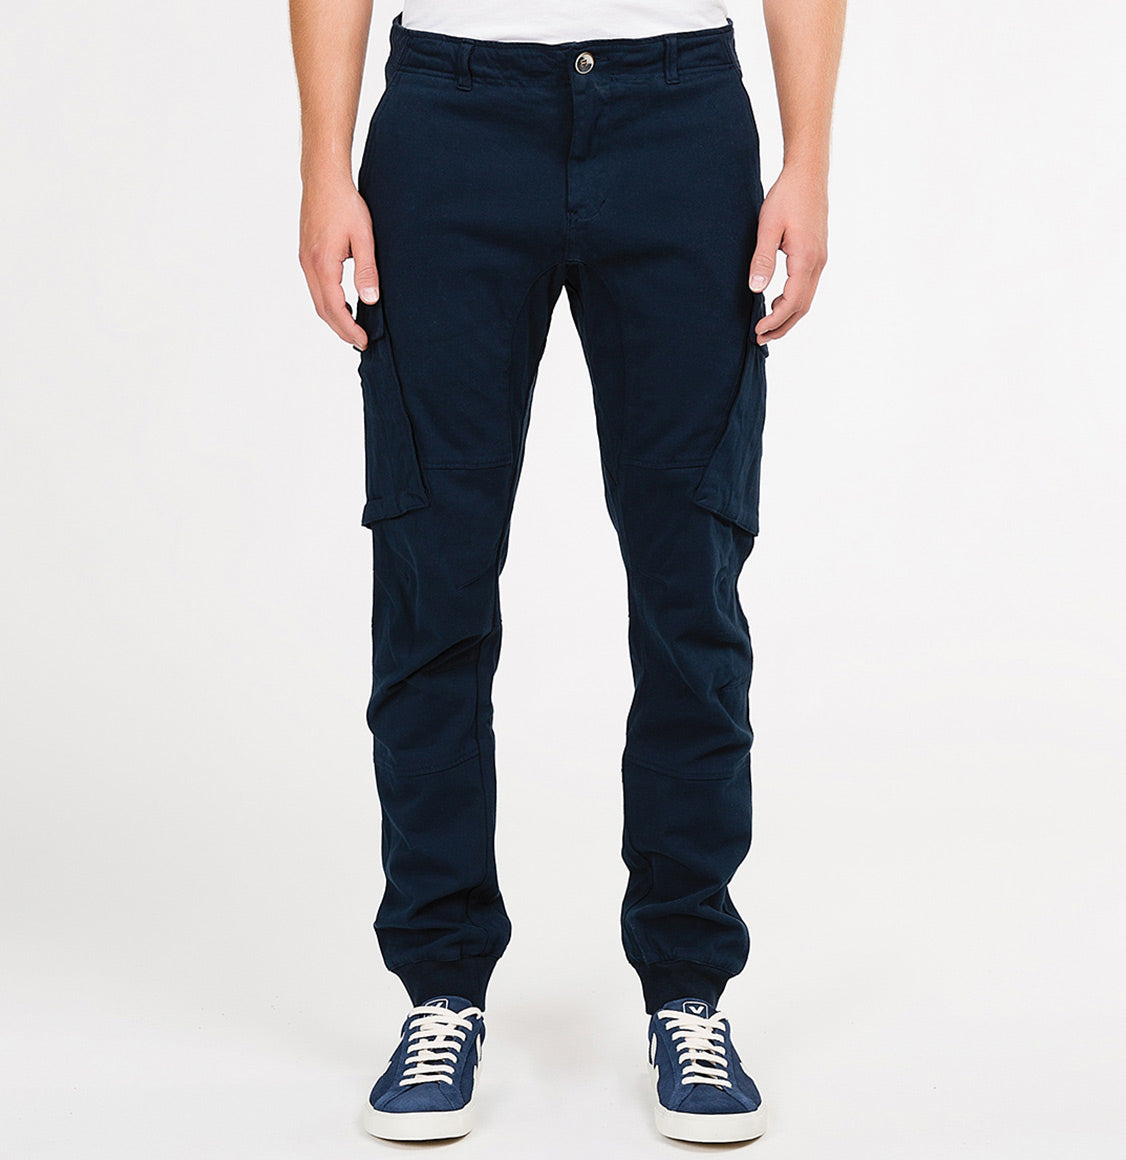 Cargo Cotton Light Weight Pants Navy Blue | The Project Garments - A